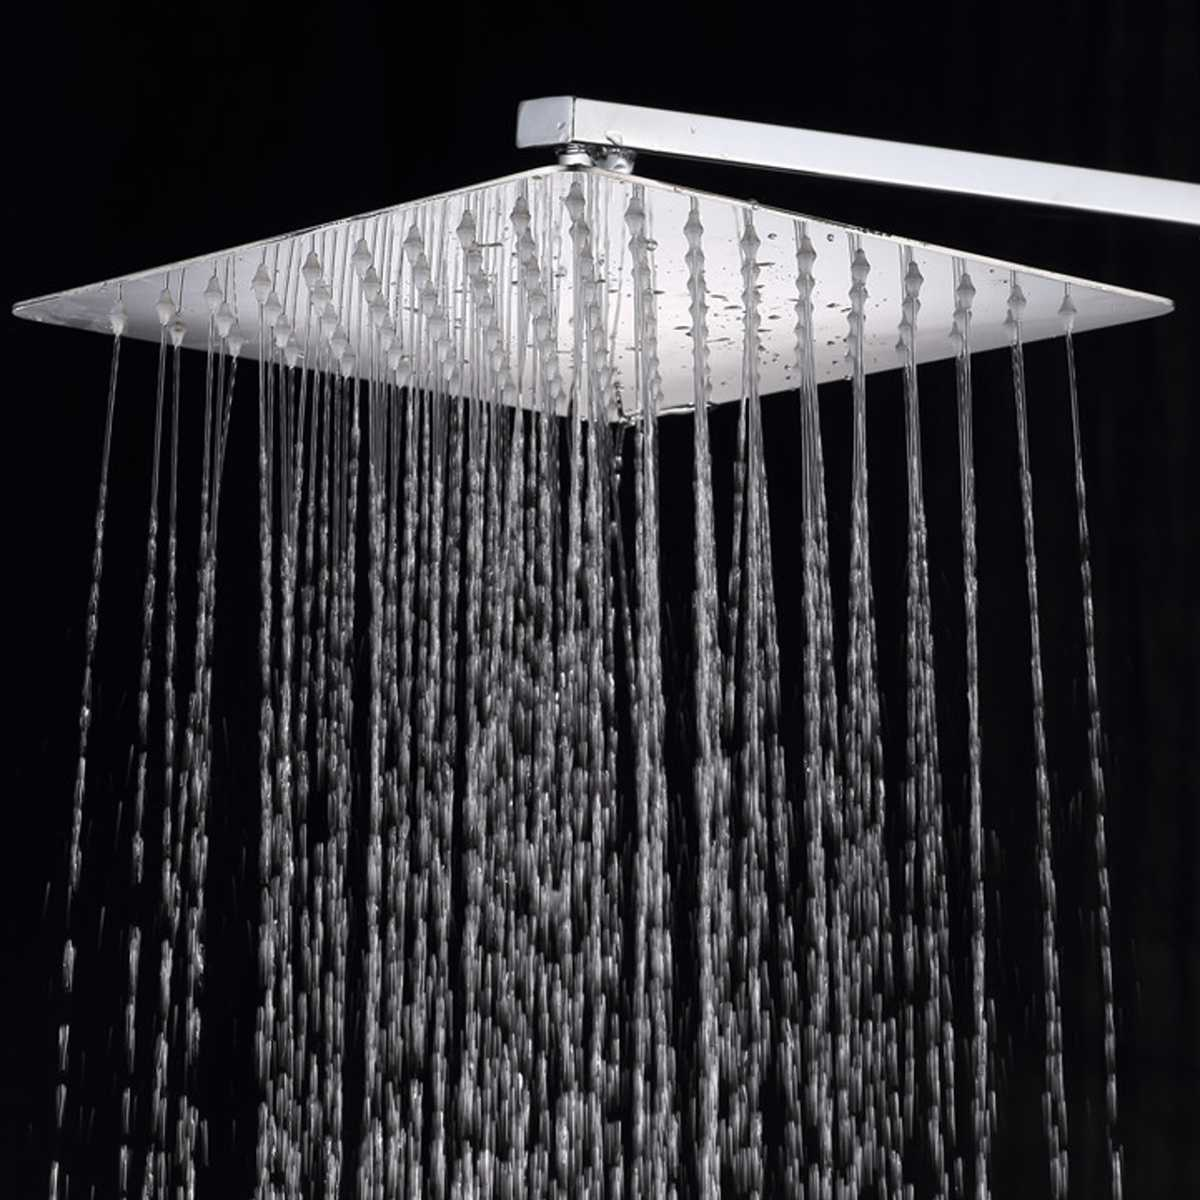 12 Inch Stainless Steel Shower Head Square Or Round Top Rainfall Head Shower Chromed Mirror Shower Faucet For Bathroom